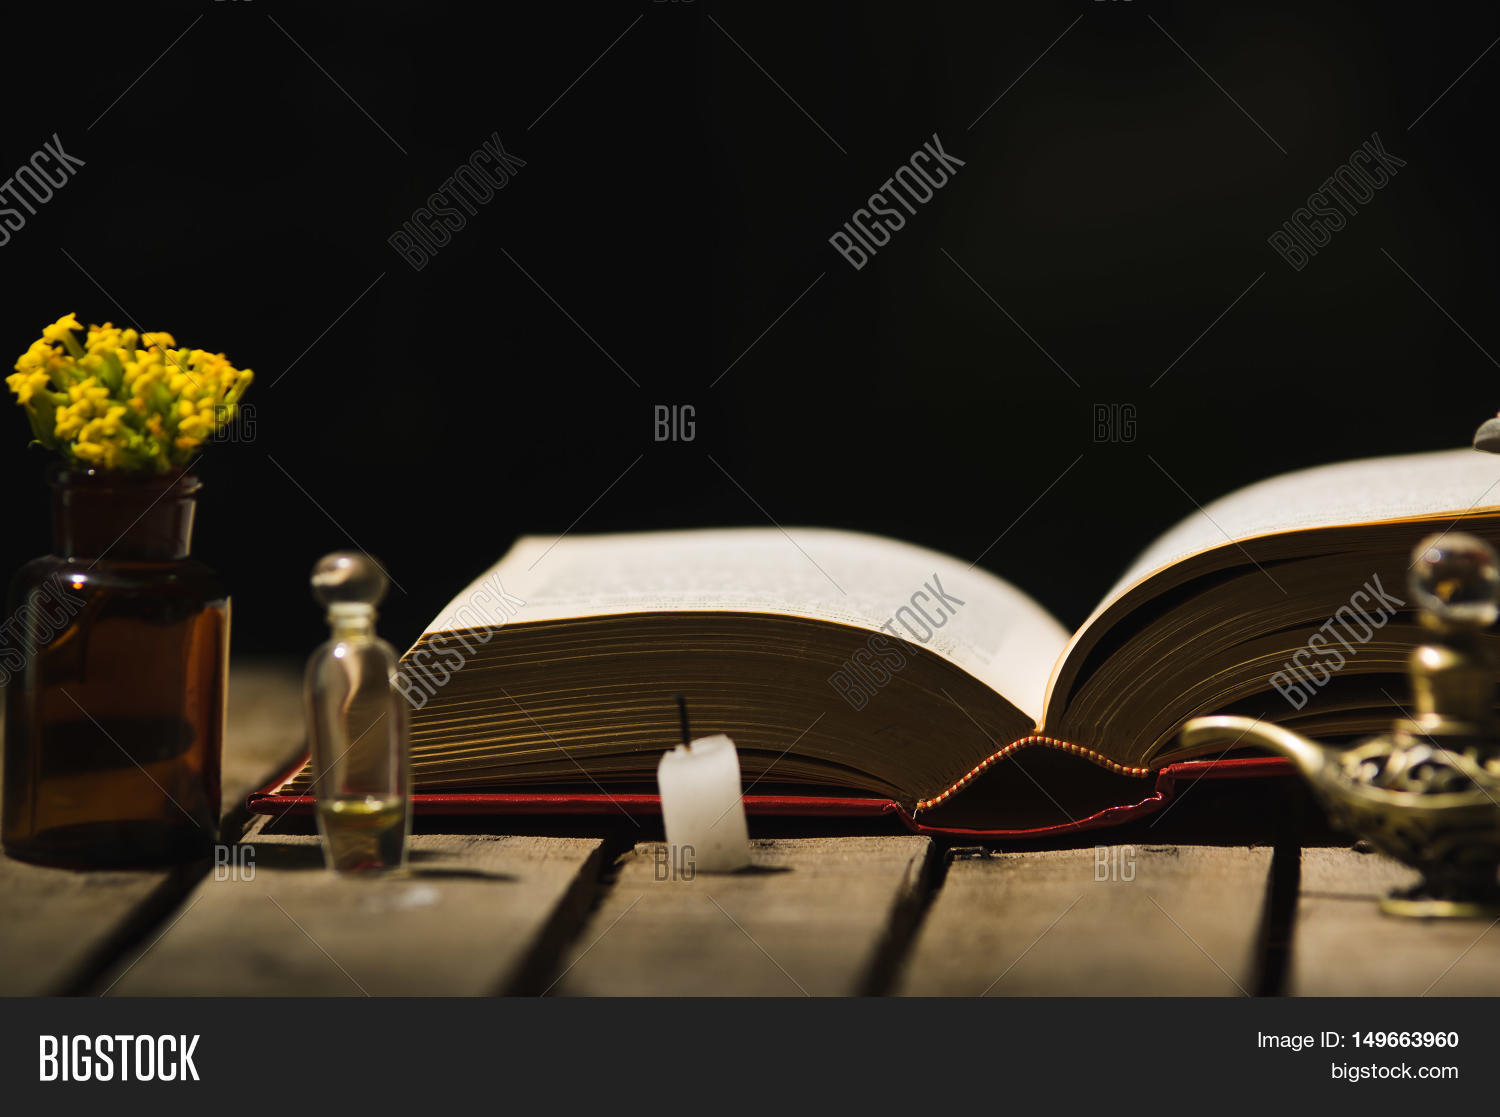 Chaise Aladin Thick Book Lying Open On Wooden Surface